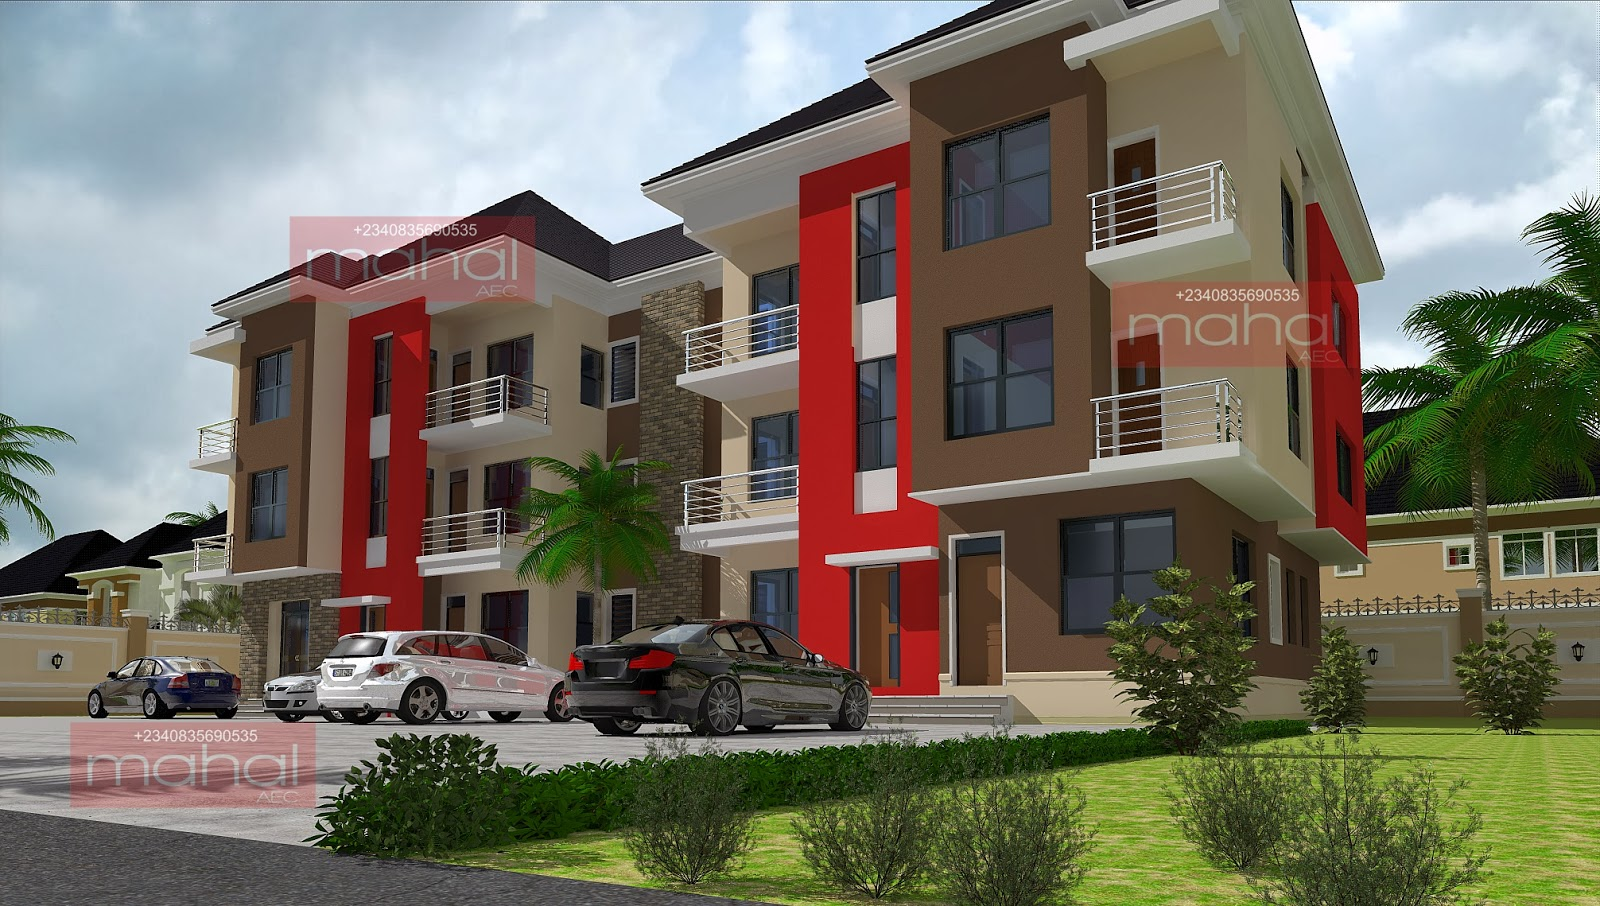 Contemporary nigerian residential architecture azubie for Nigerian architectural designs